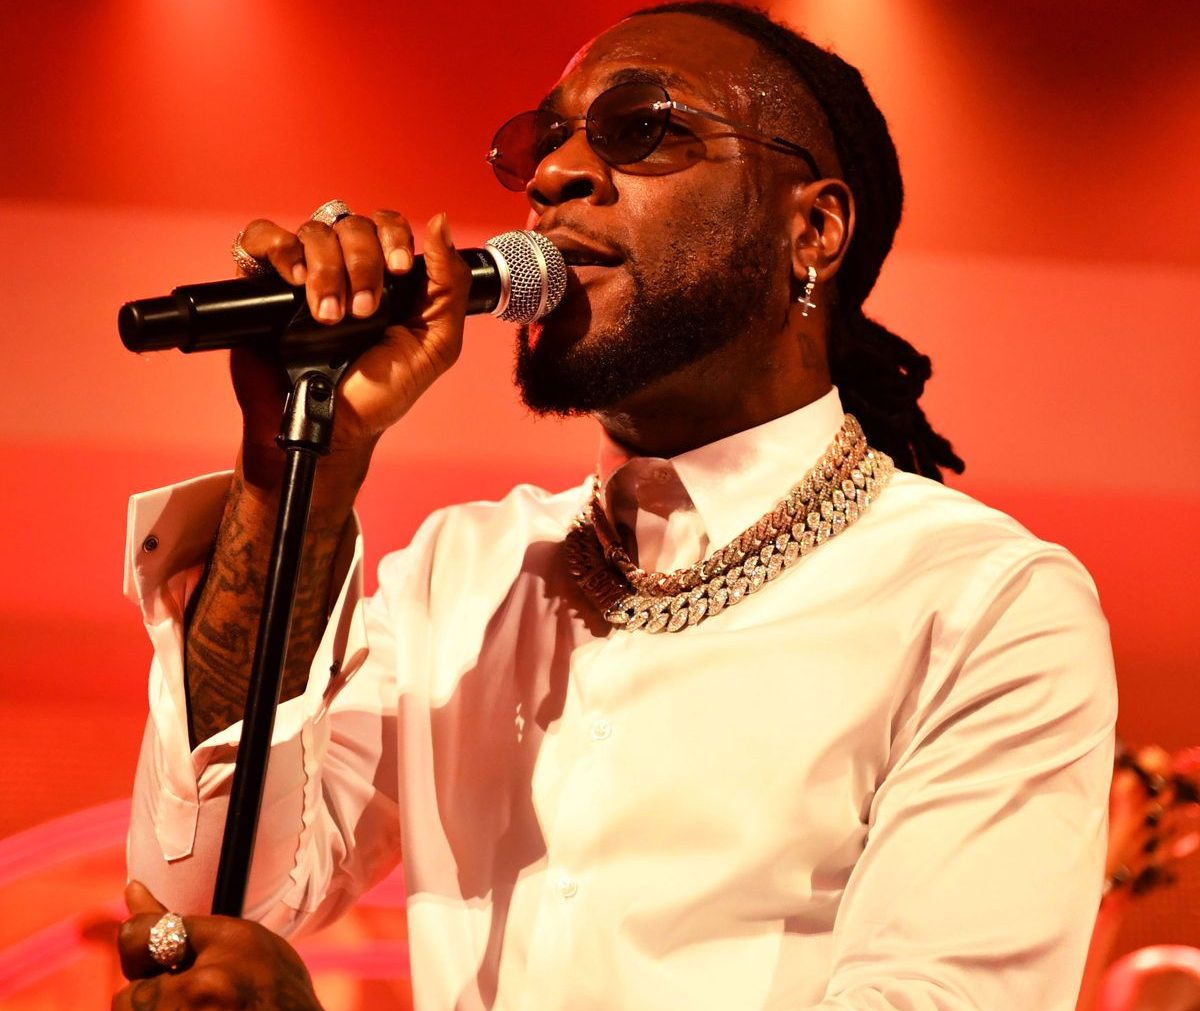 Burna Boy Gets Nomination For Int. Male Solo Artist At BRIT Awards